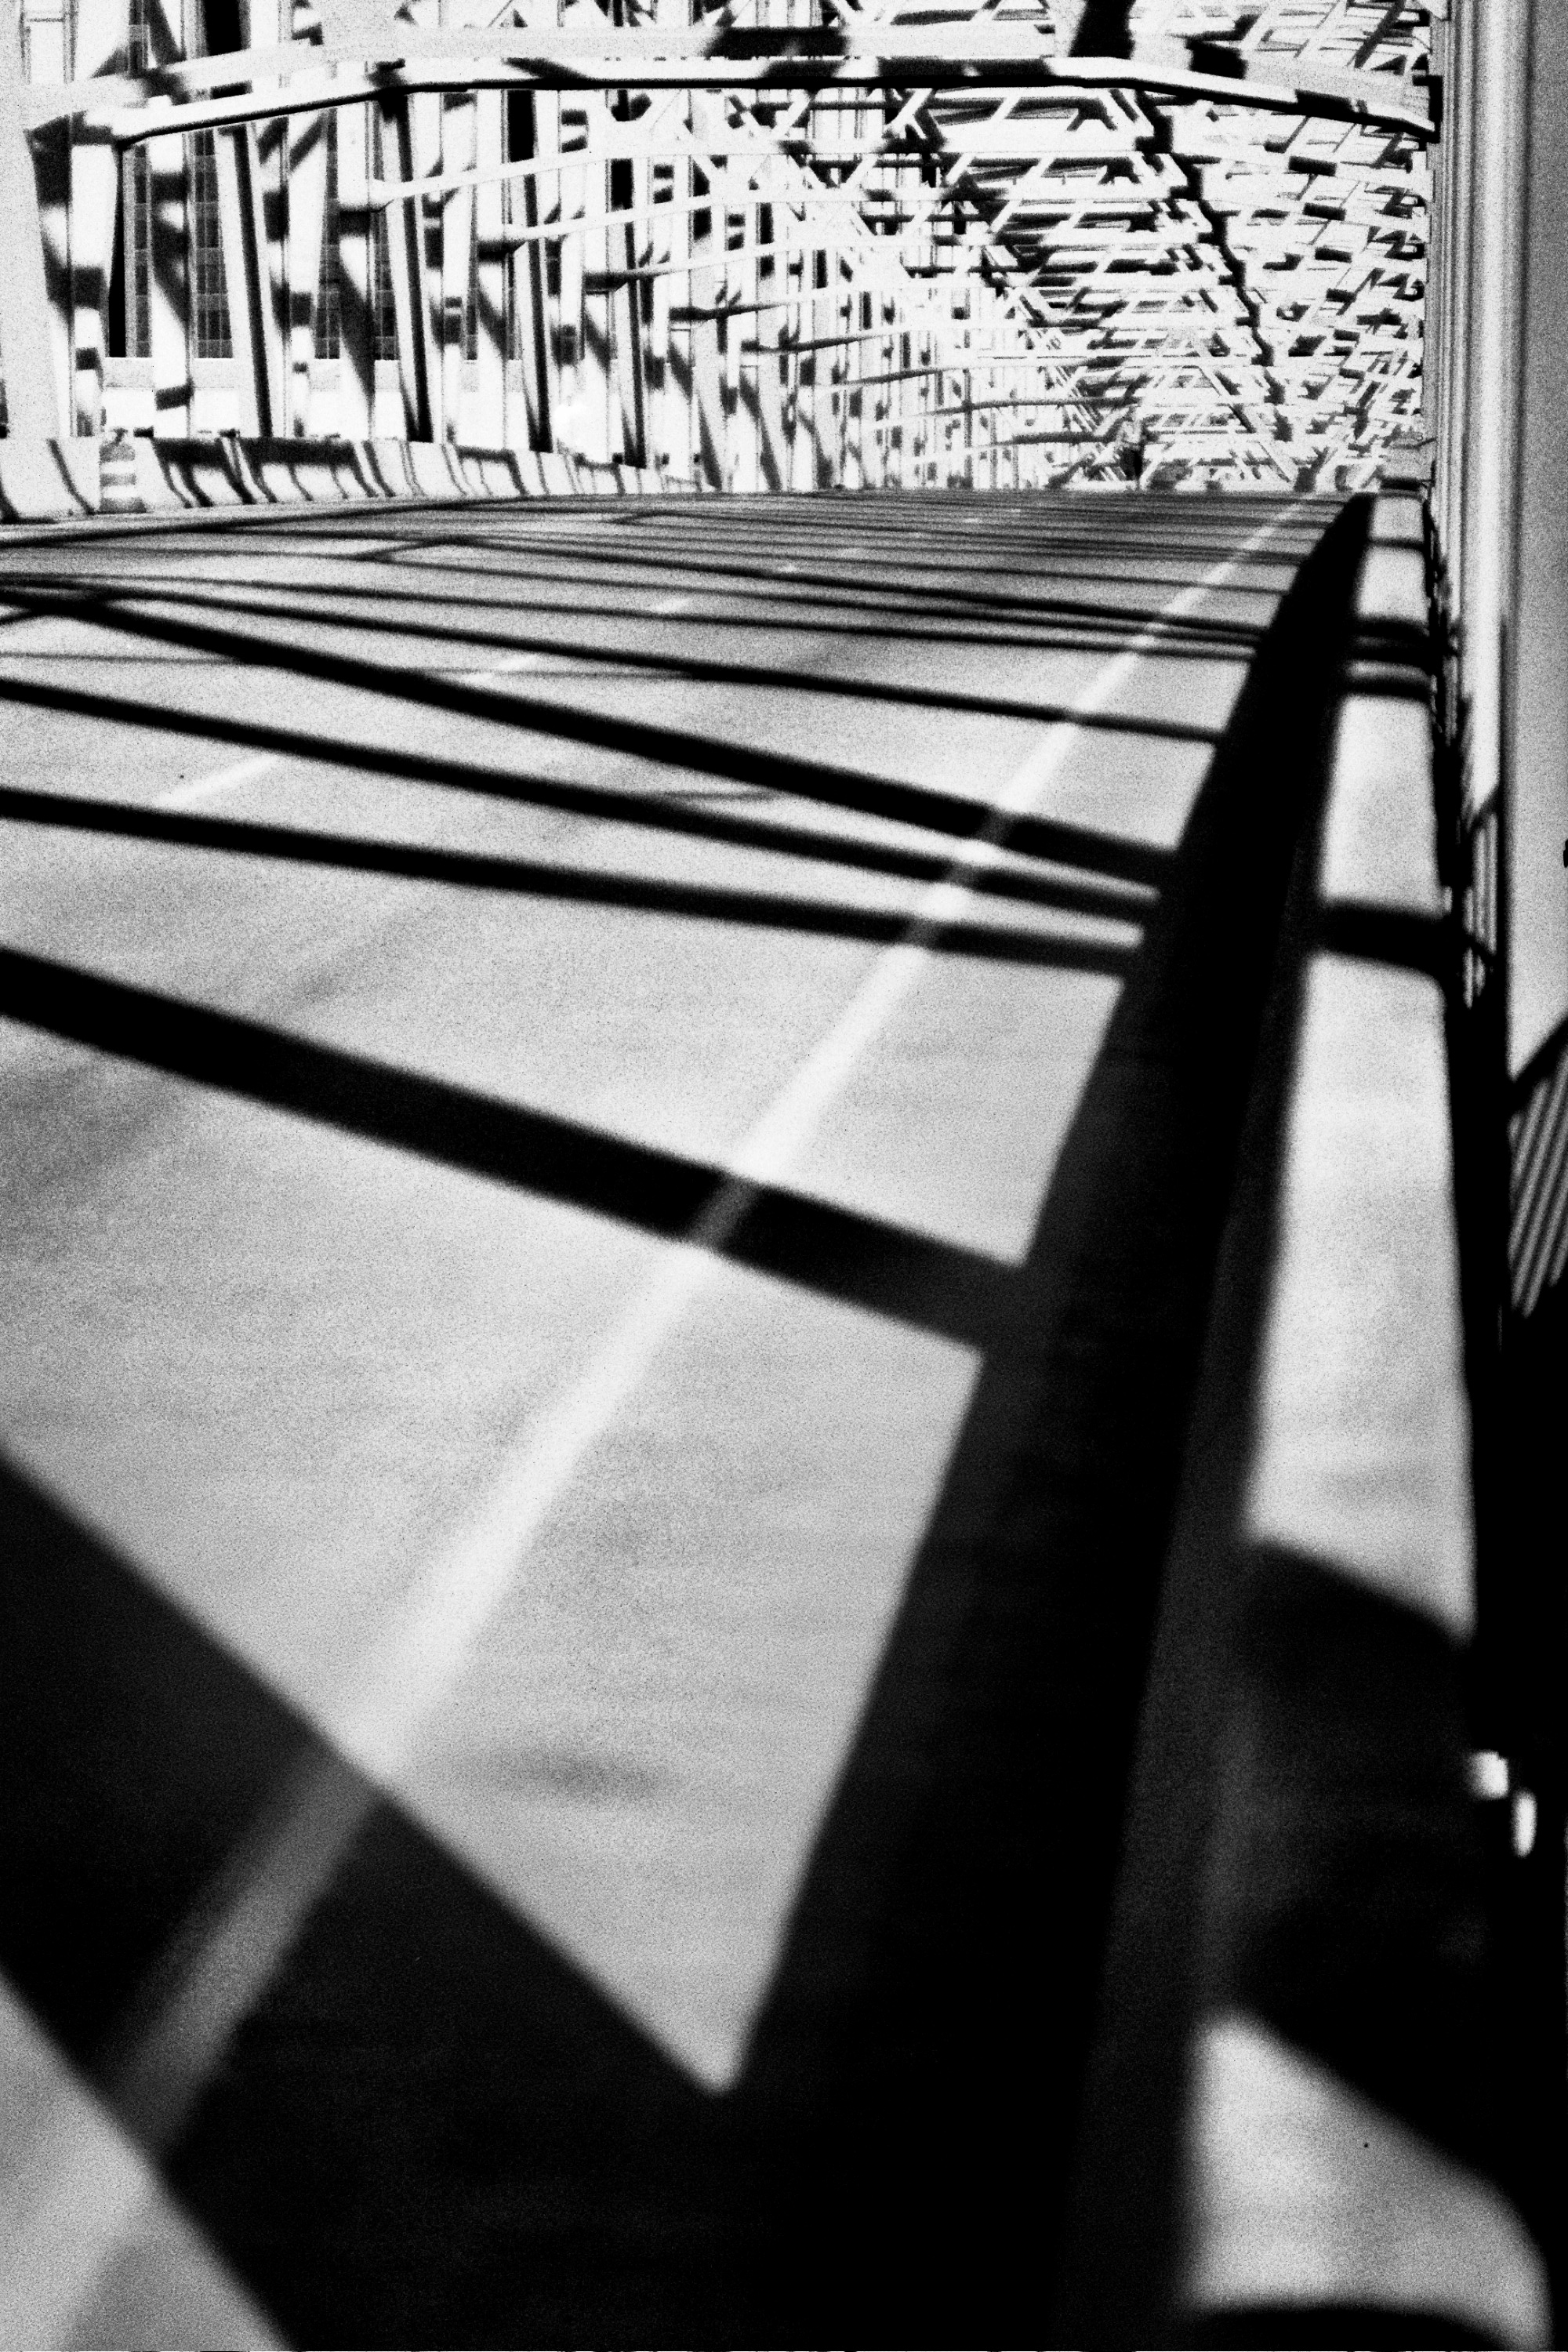 """""""Central Bridge: Newport, Kentucky"""" by Brett Sutton, size made to order, film photography (2017), from $85 and up 